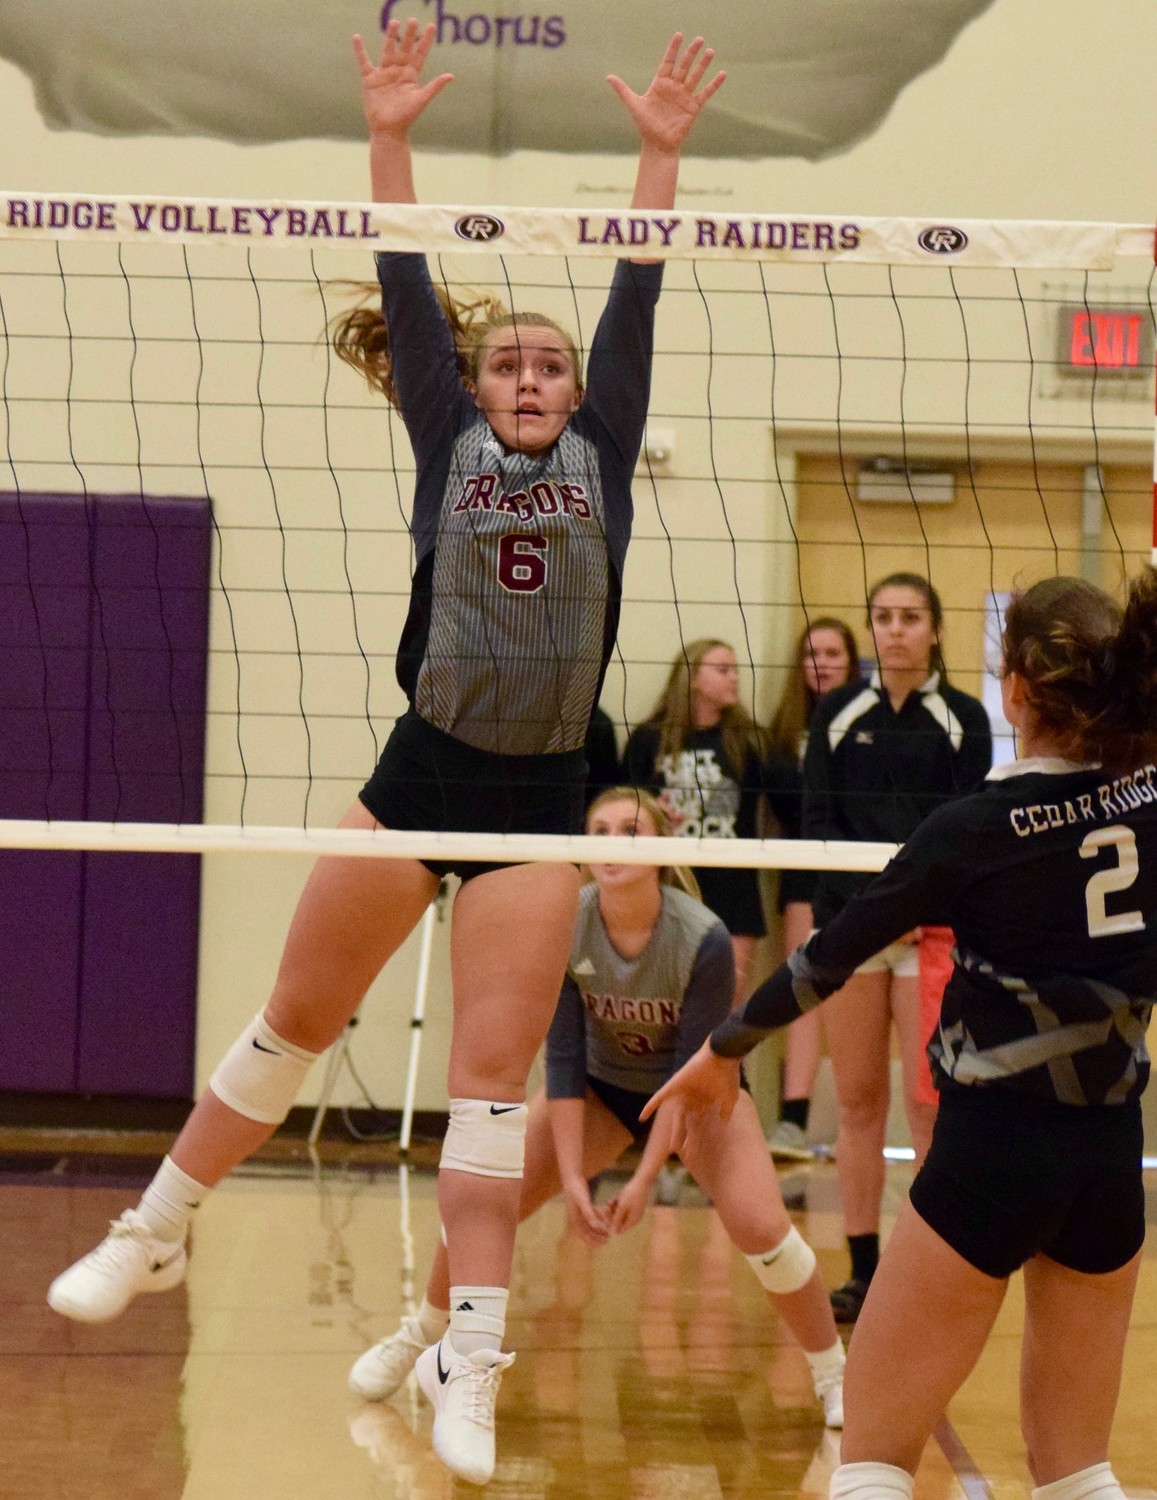 Emma Young and Round Rock beat Cedar Ridge 3-0 (25-22, 25-23, 25-23) in the first game of district 13-6A play on Tuesday night.